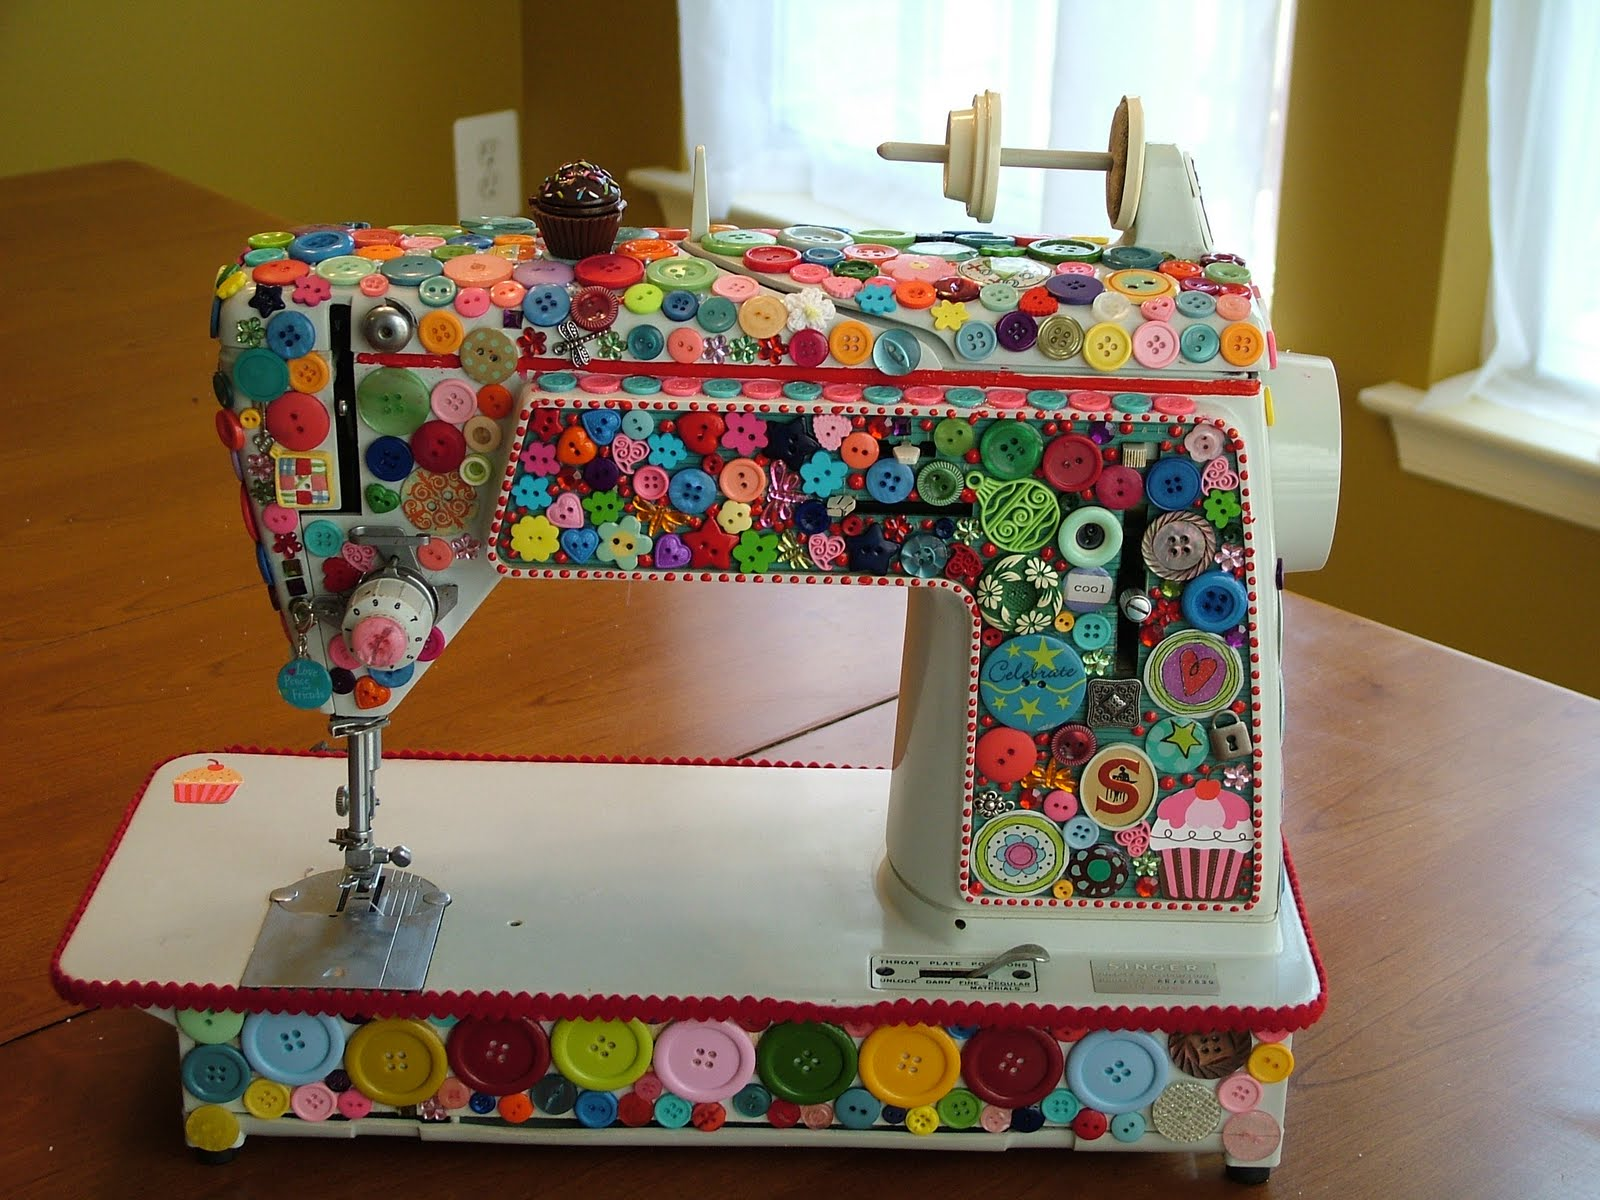 quilted cupcake quilted cupcake 39 s sewing machine. Black Bedroom Furniture Sets. Home Design Ideas